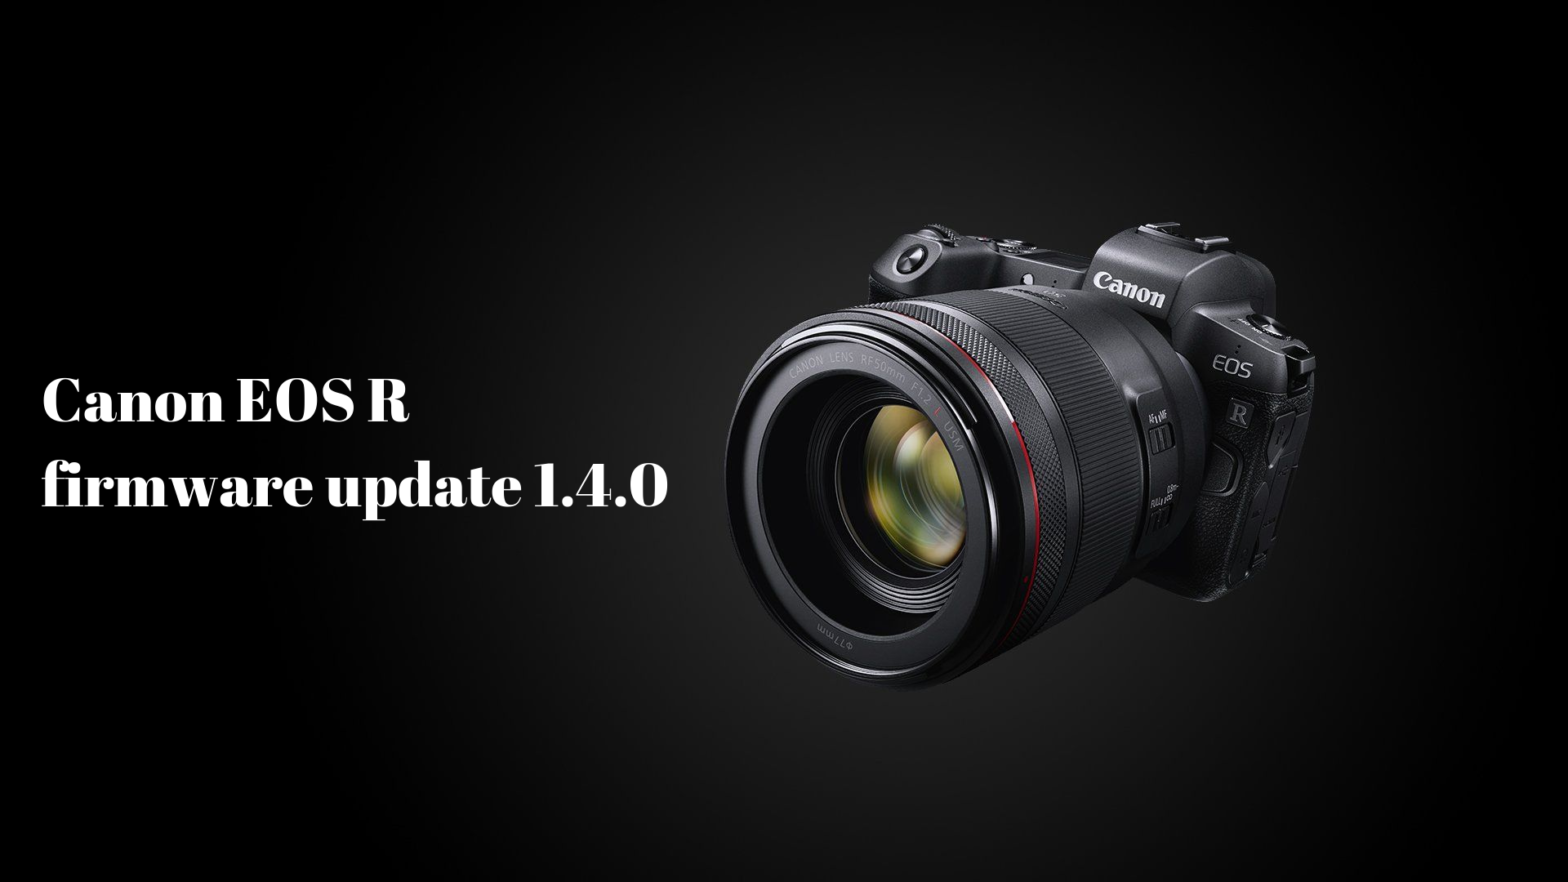 Canon EOS R firmware update 1.4.0